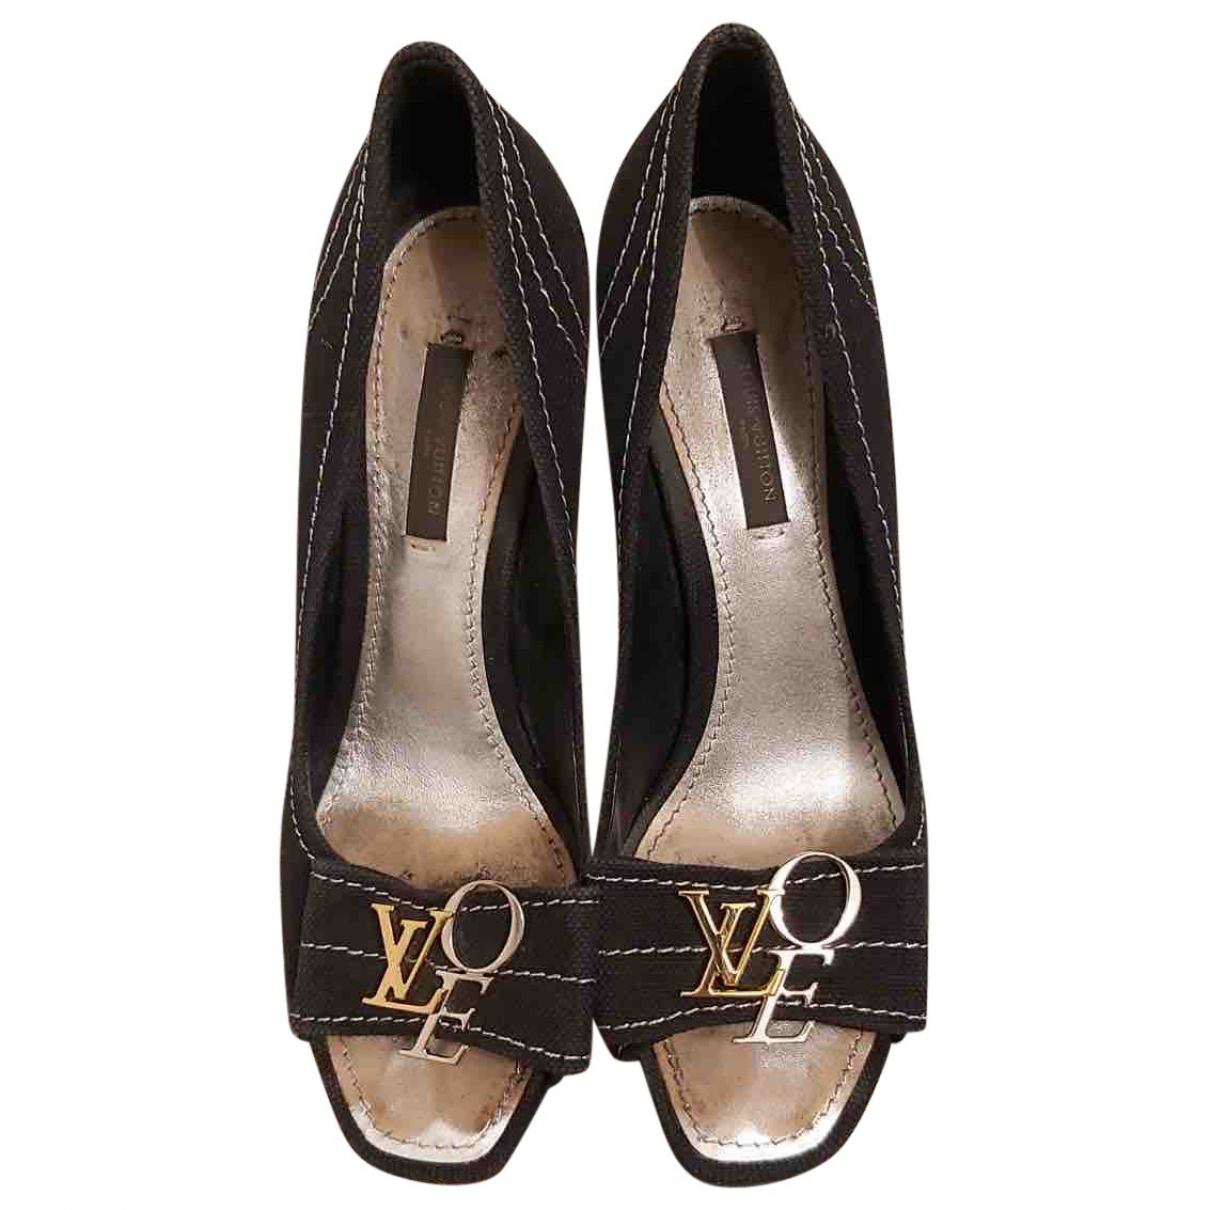 Louis Vuitton \N Pumps in  Schwarz Leinen